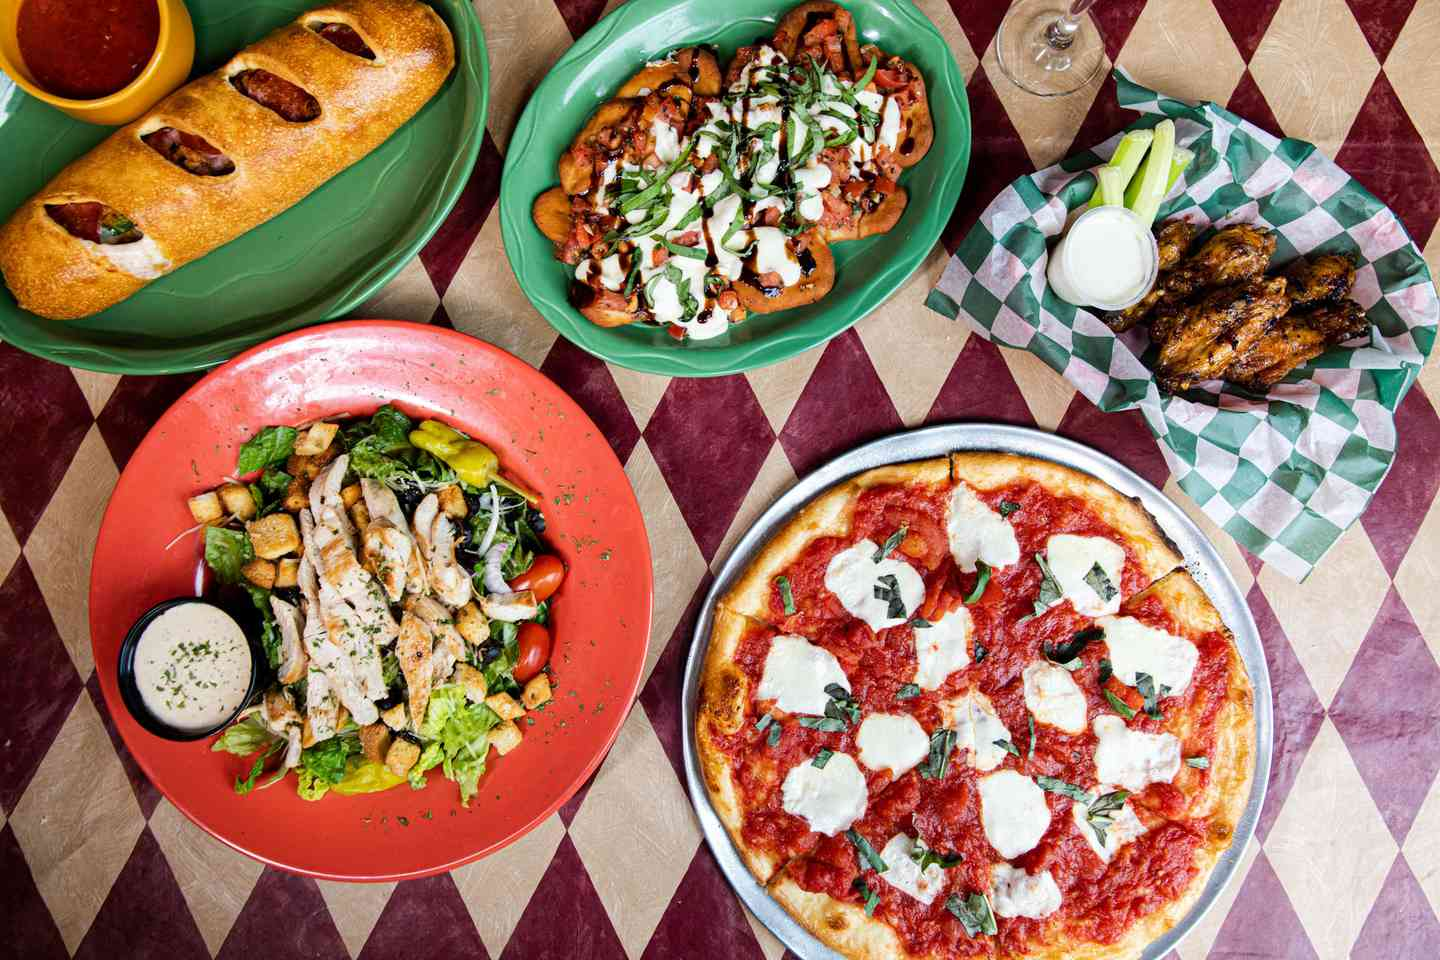 overhead view of pizza and sides